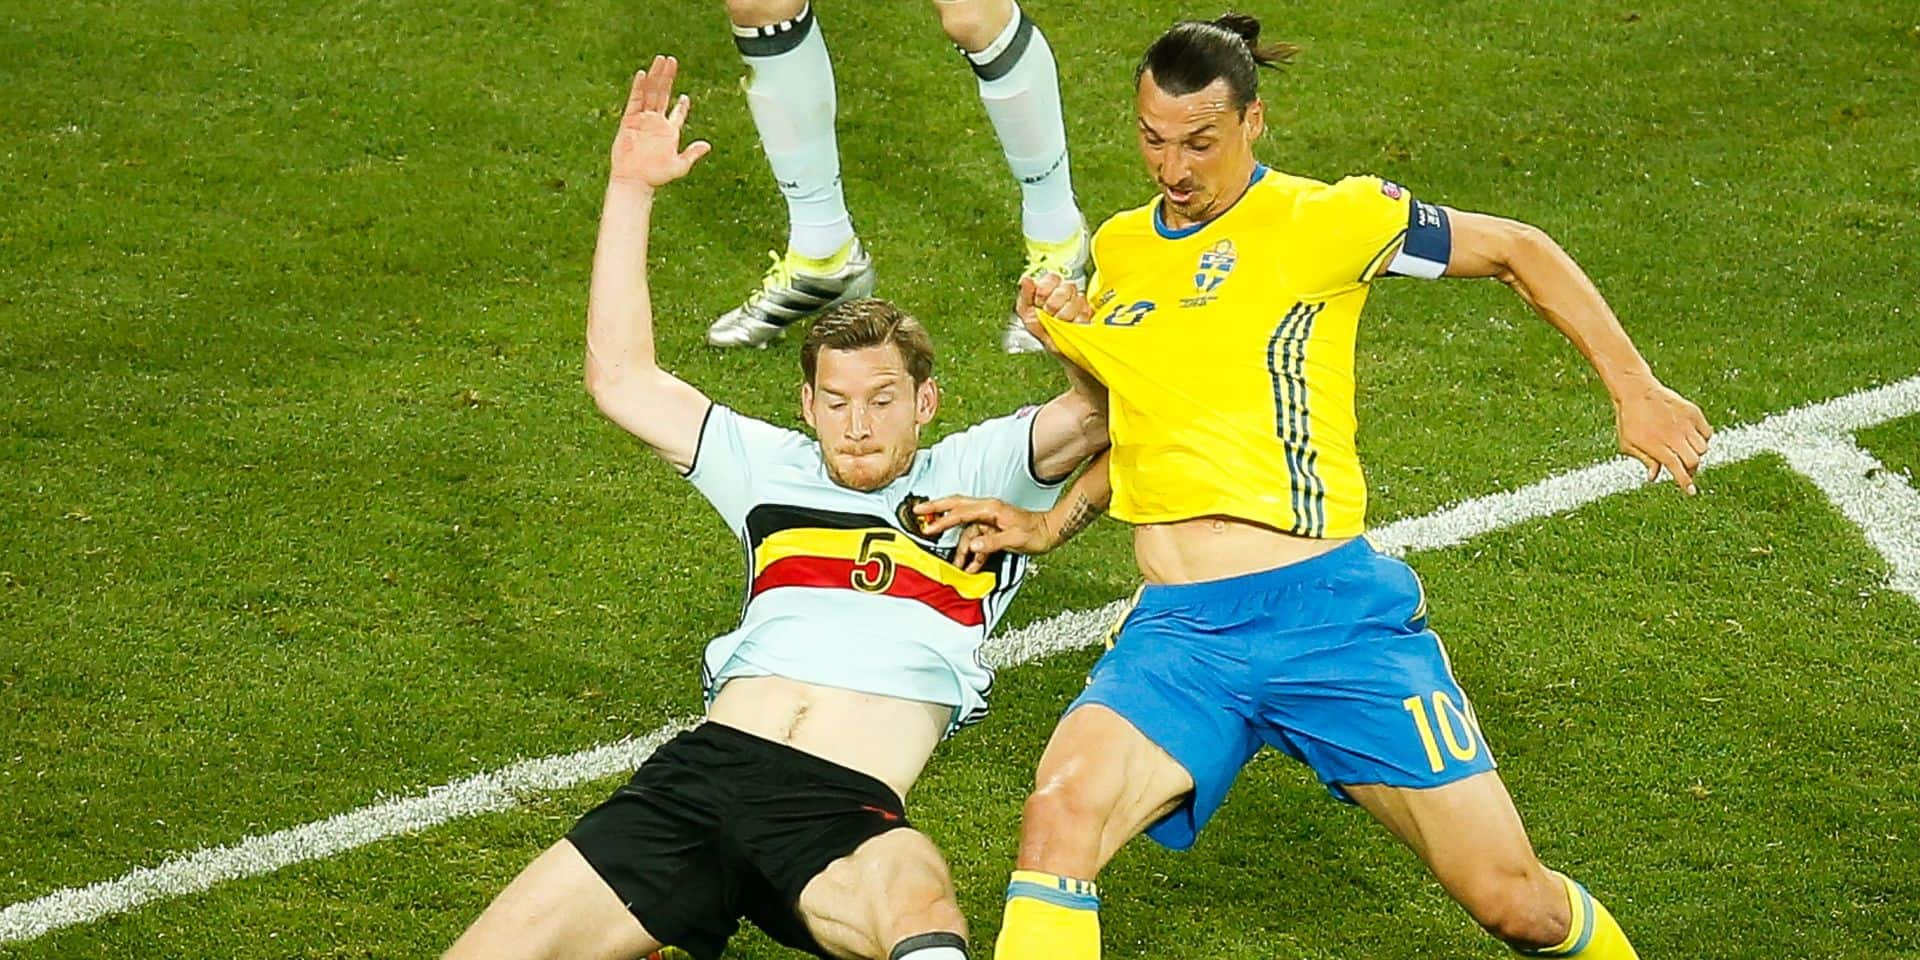 Belgium's Jan Vertonghen and Sweden's Zlatan Ibrahimovic fight for the ball during a soccer game between Belgian national soccer team Red Devils and Sweden, in group E of the group stage of the UEFA Euro 2016 European Championships, on Wednesday 22 June 2016, in Nice, France. The Euro2016 tournament is taking place from 10 June to 10 July. BELGA PHOTO BRUNO FAHY